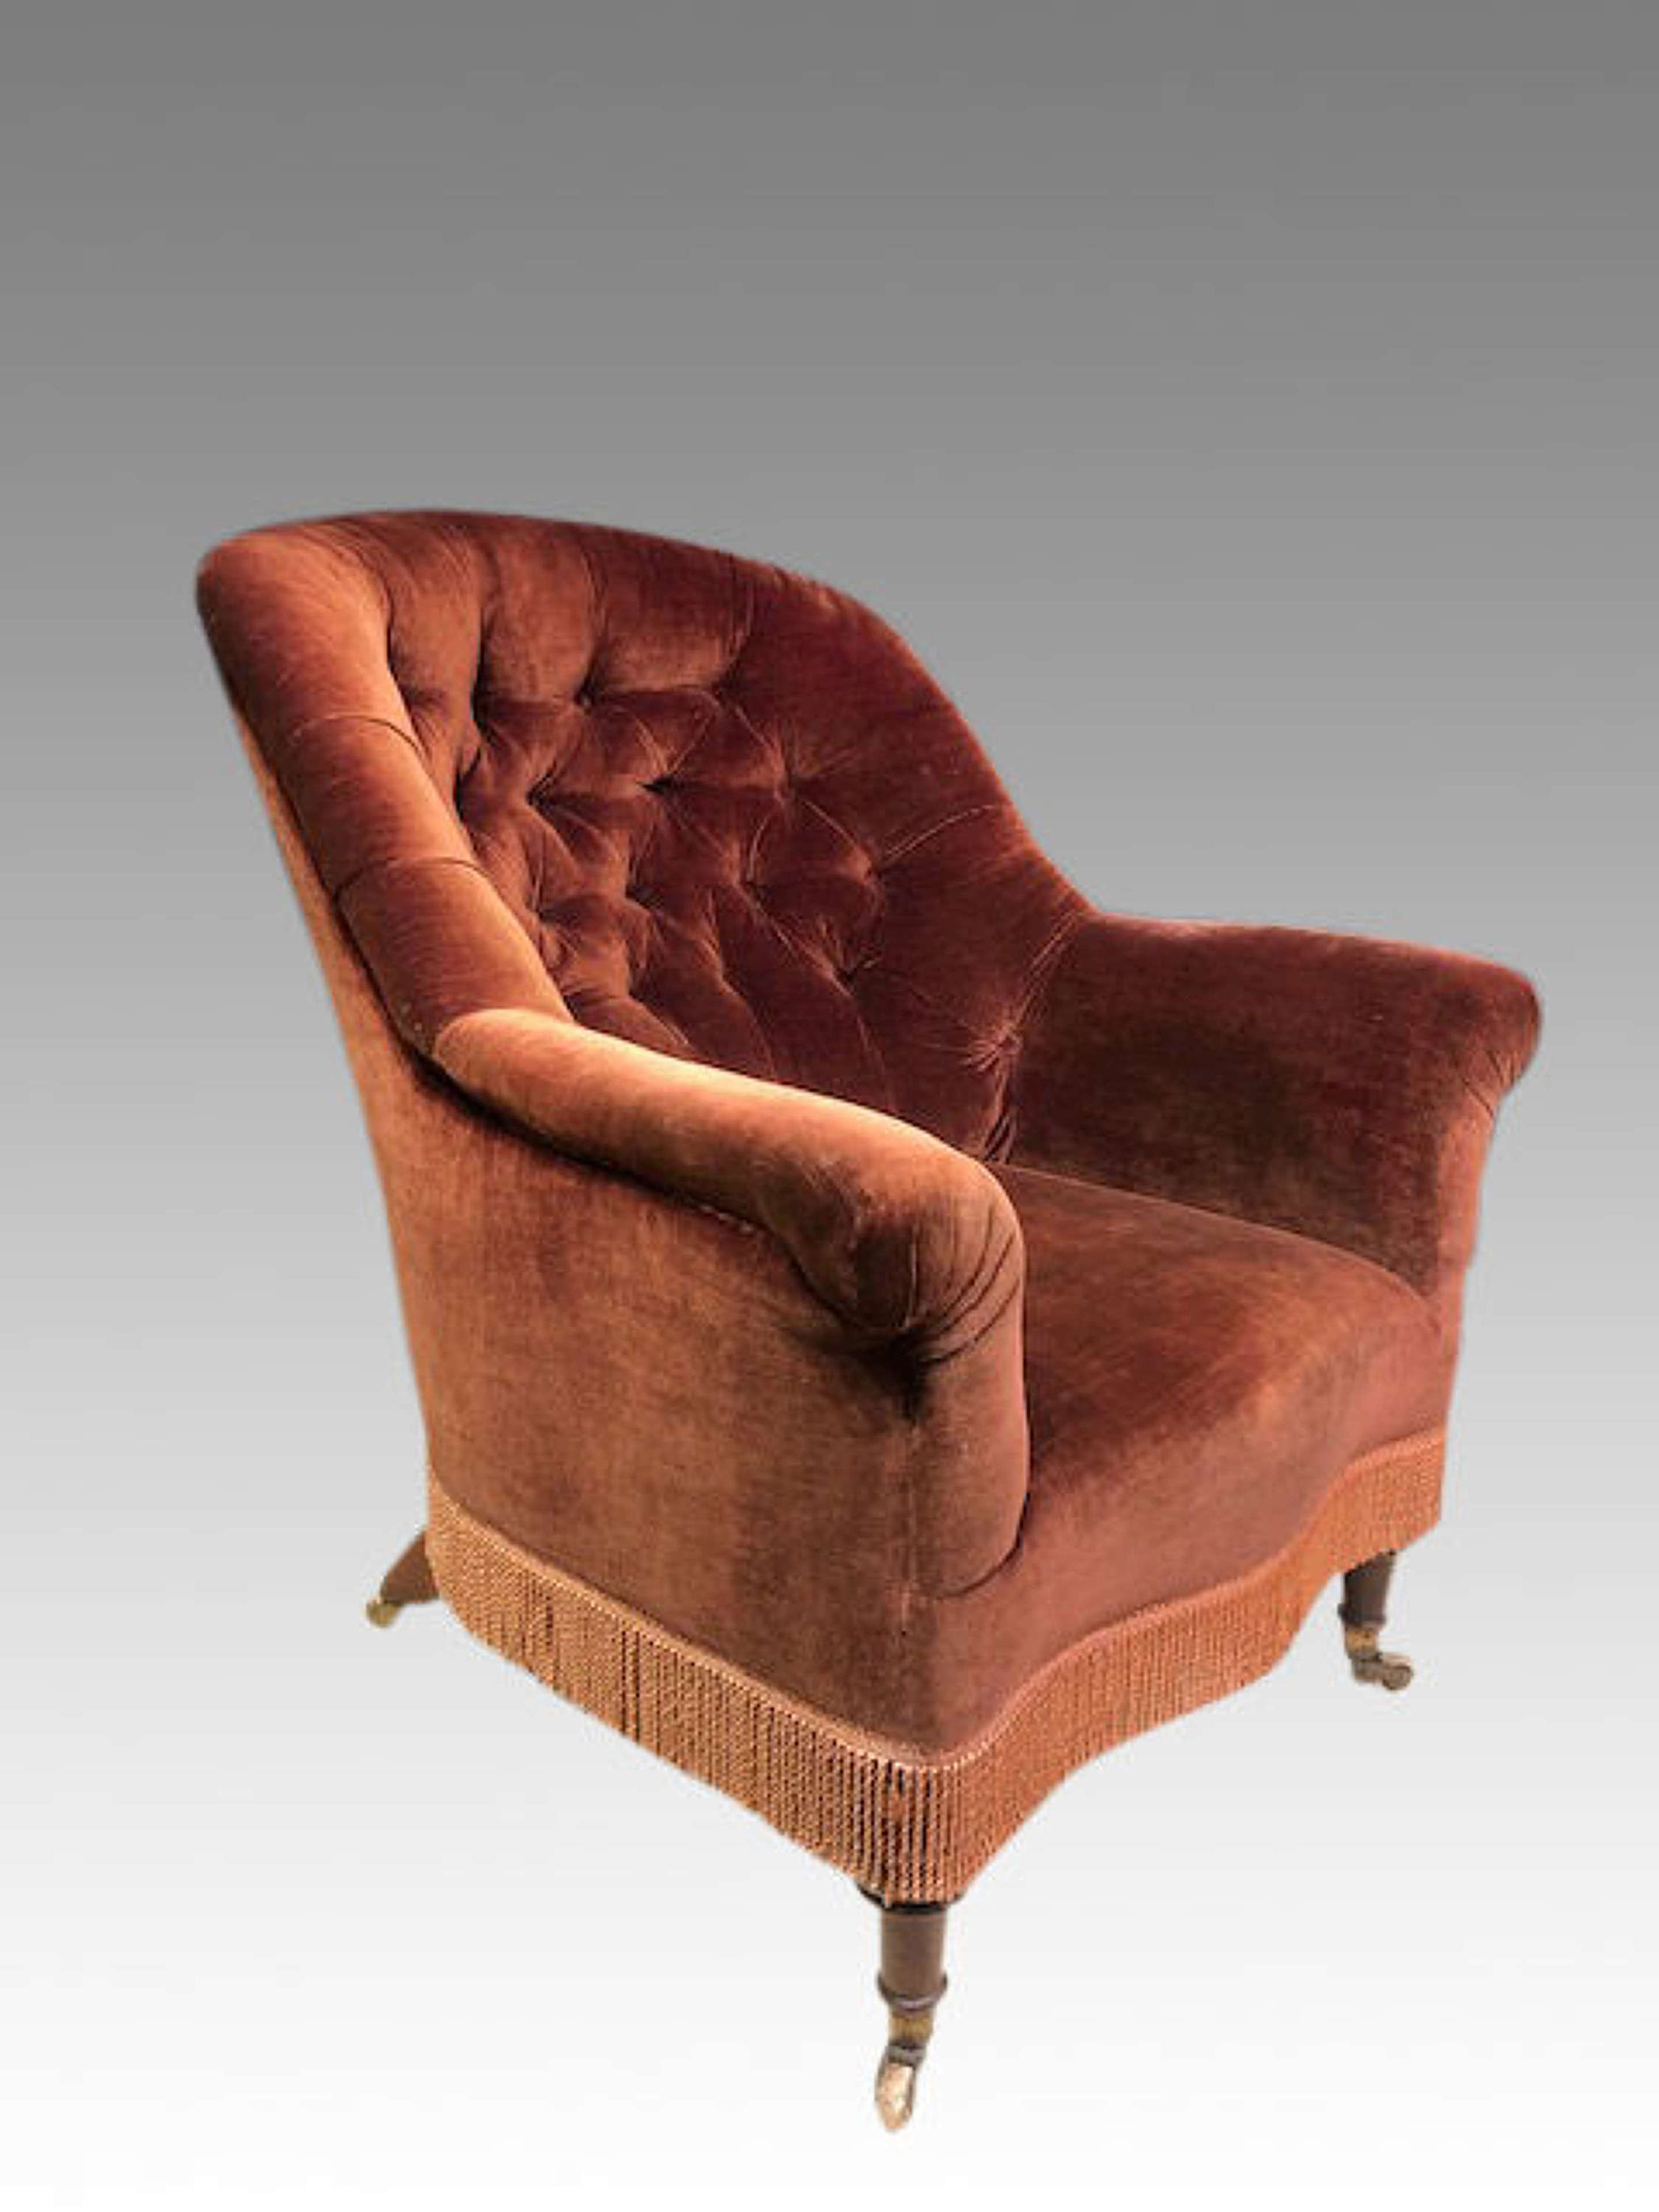 Large 19th century mahogany library chair.